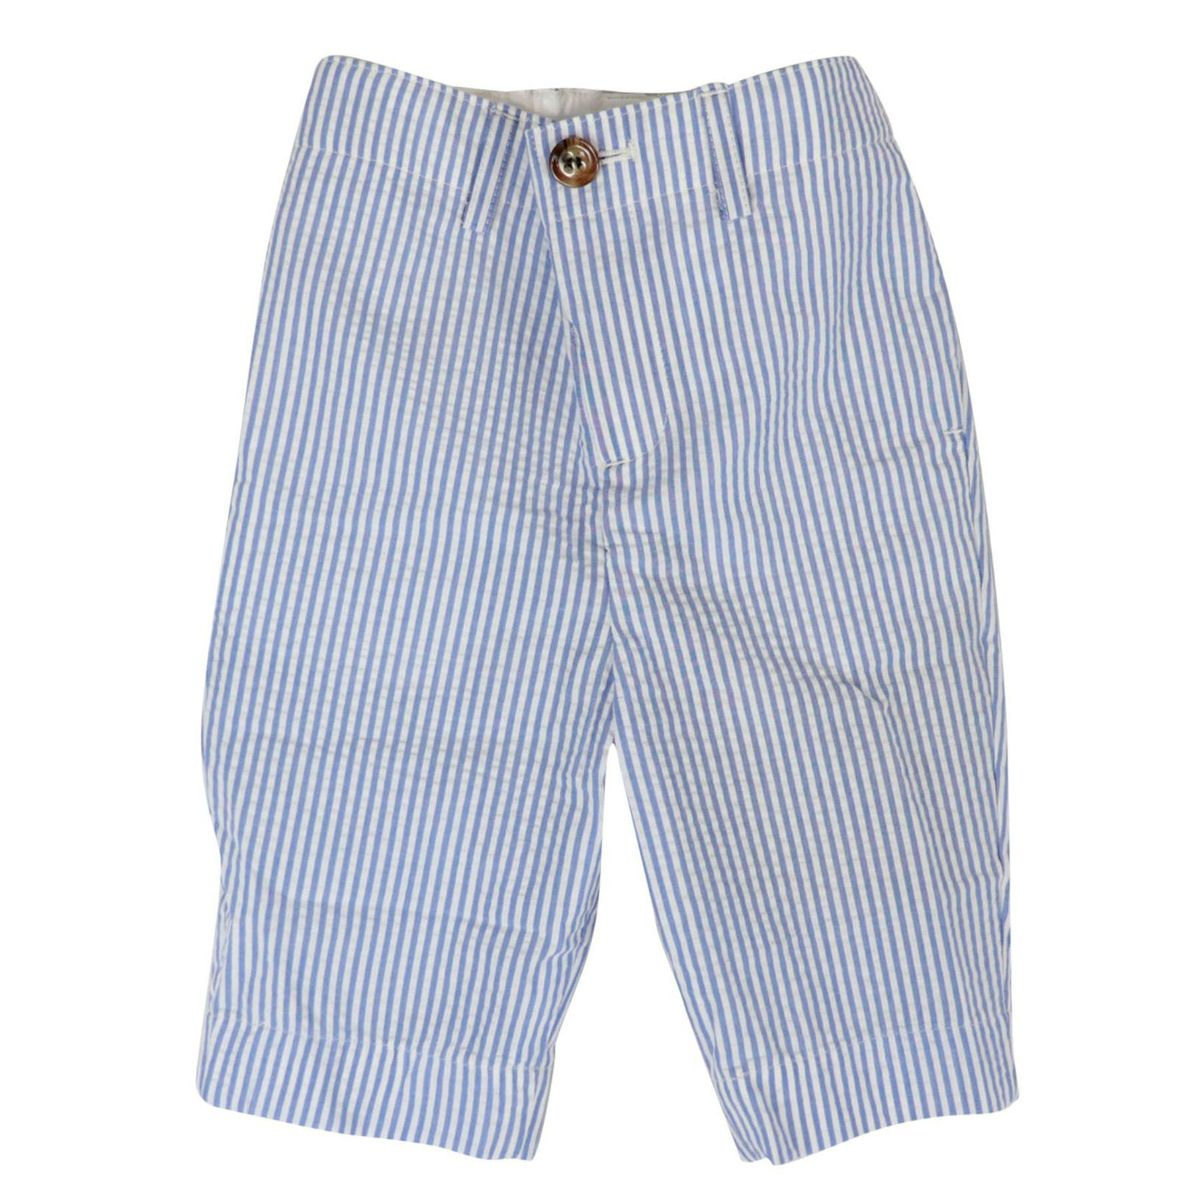 Pants with america Manuel pocket in striped cotton Stripes white / blue Burberry